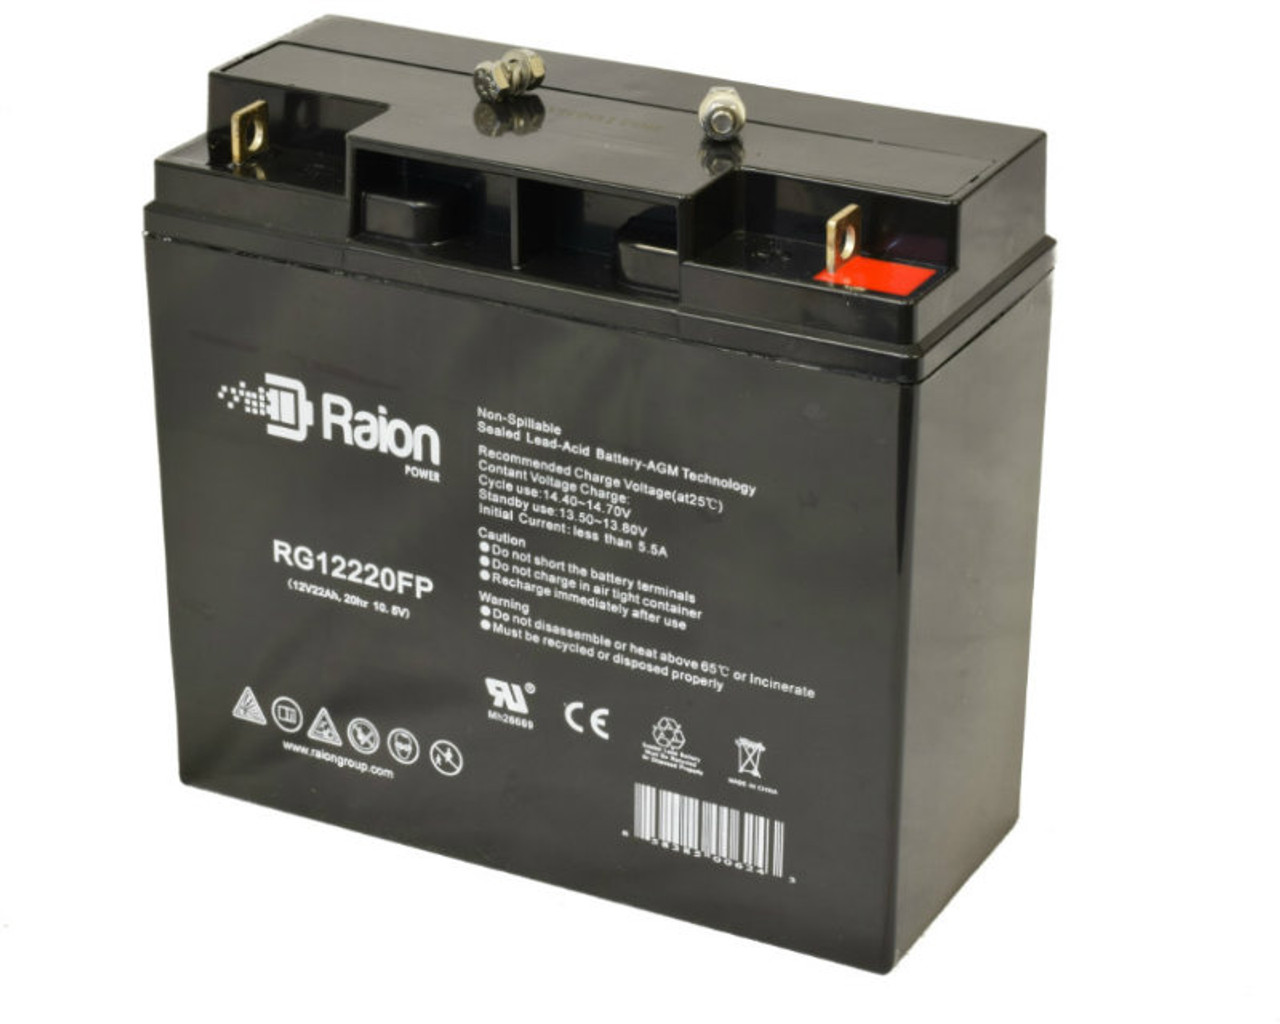 Raion Power RG12220FP Replacement Wheelchair Battery For Merits Pioneer 1 S235 Deluxe